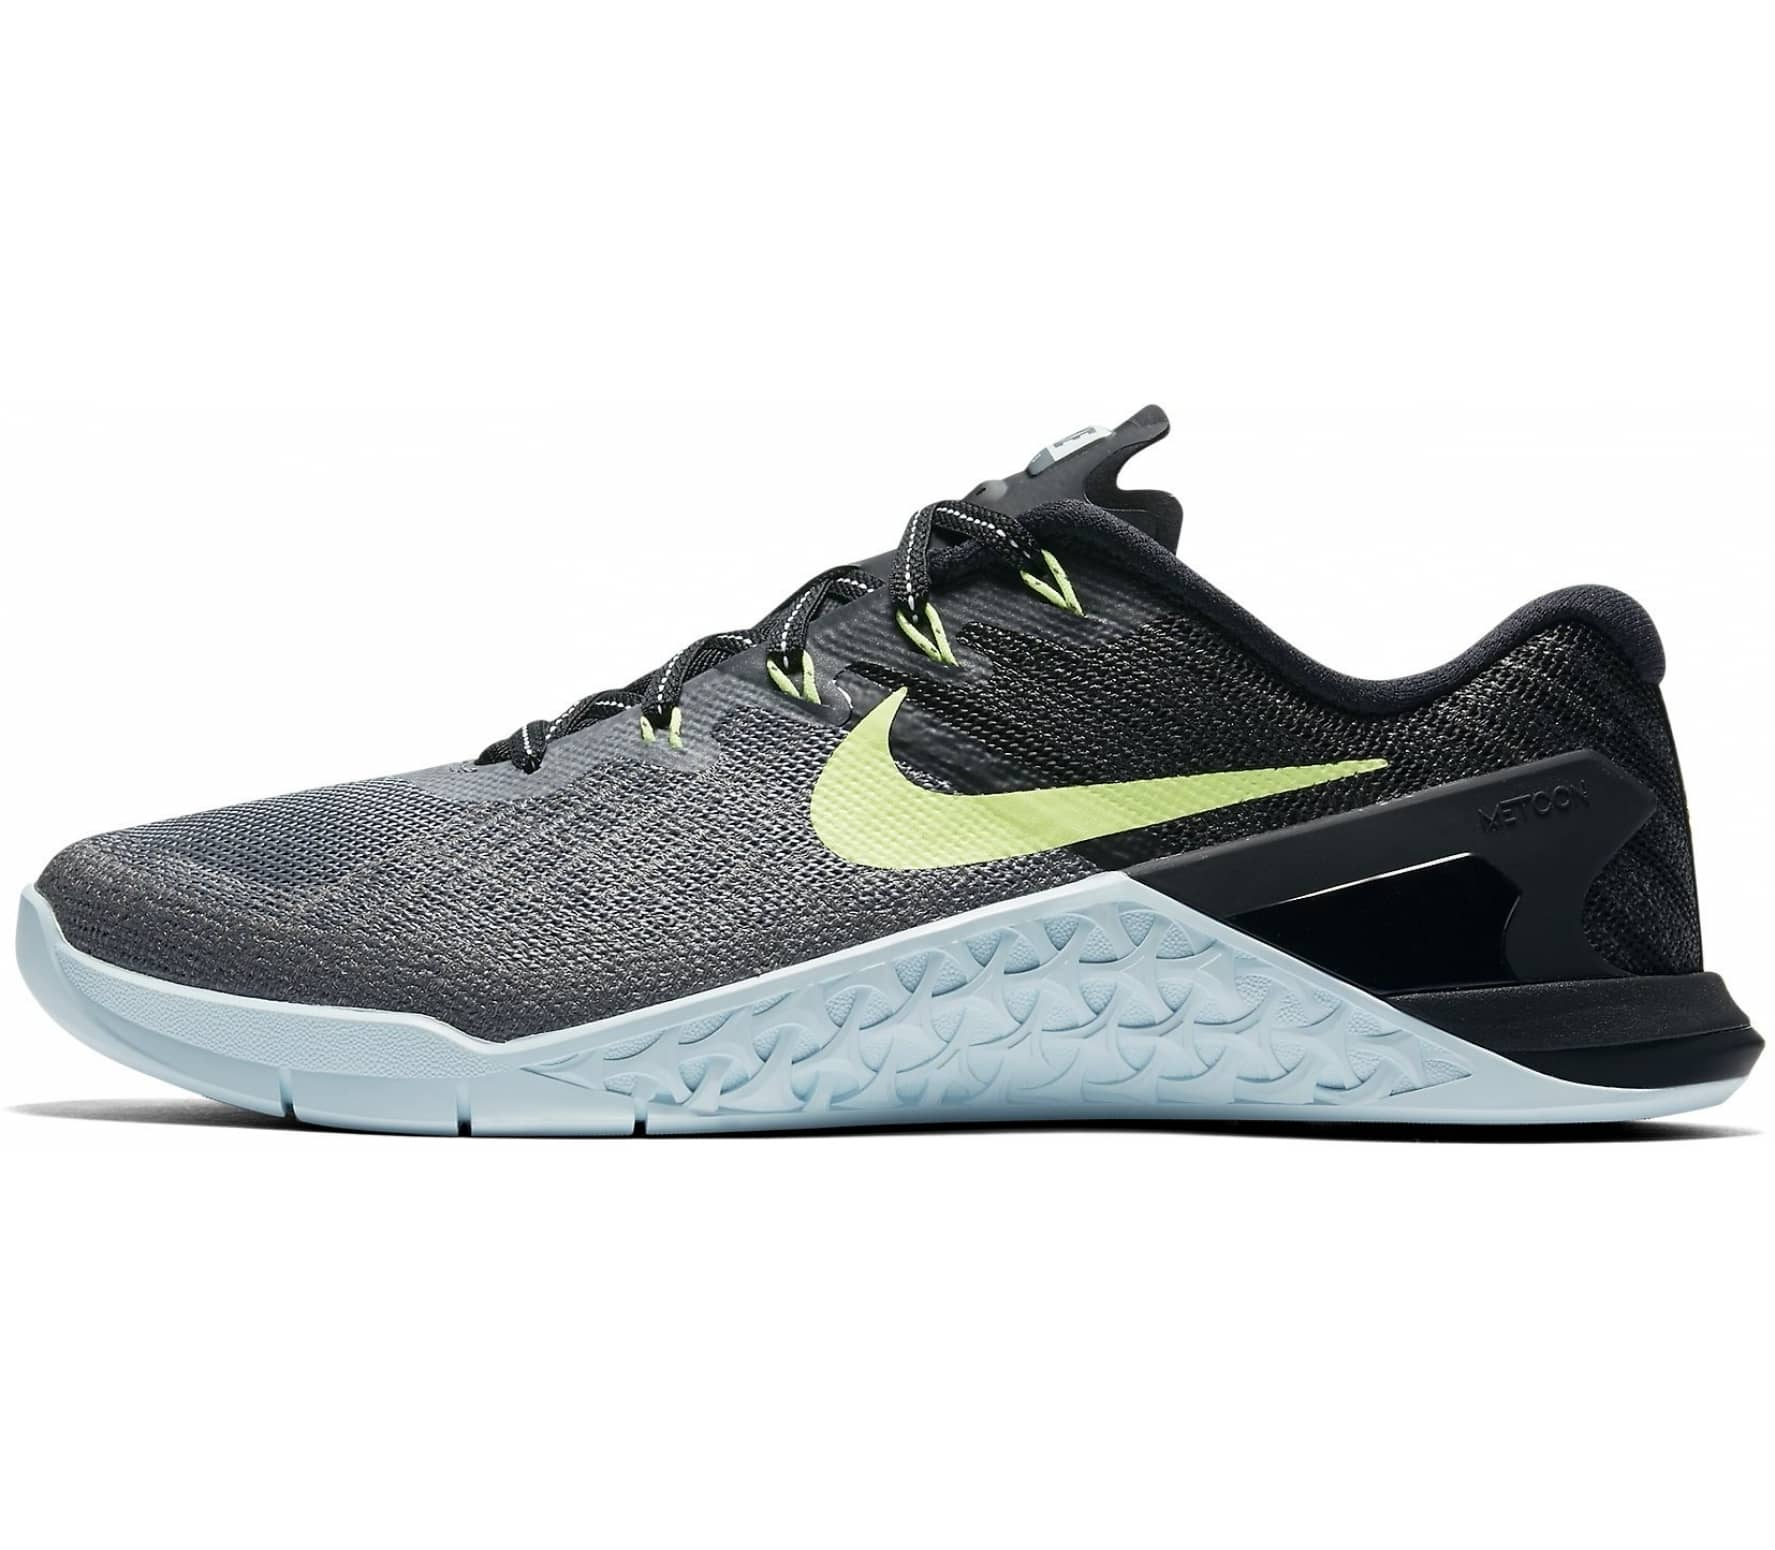 detailed look 5c9c4 fbfce Nike - Metcon 3 women s training shoes (black white)